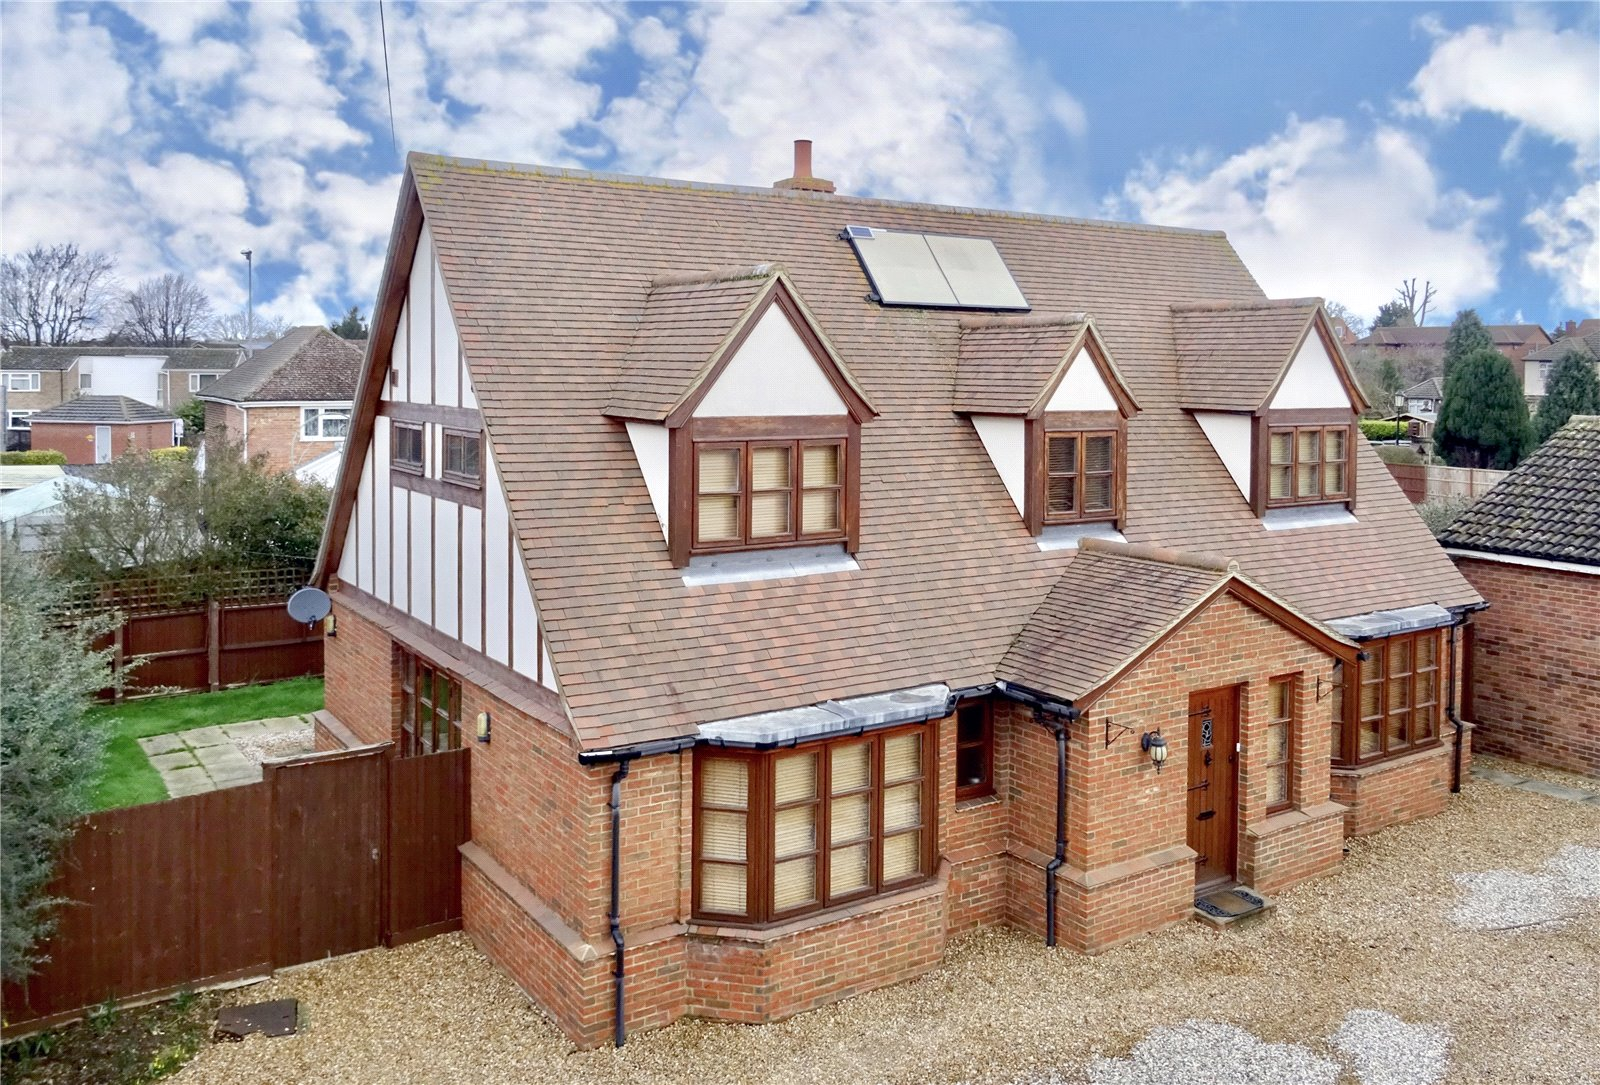 4 bed house for sale in St. Neots, Cromwell Road, PE19 2EU - Property Image 1